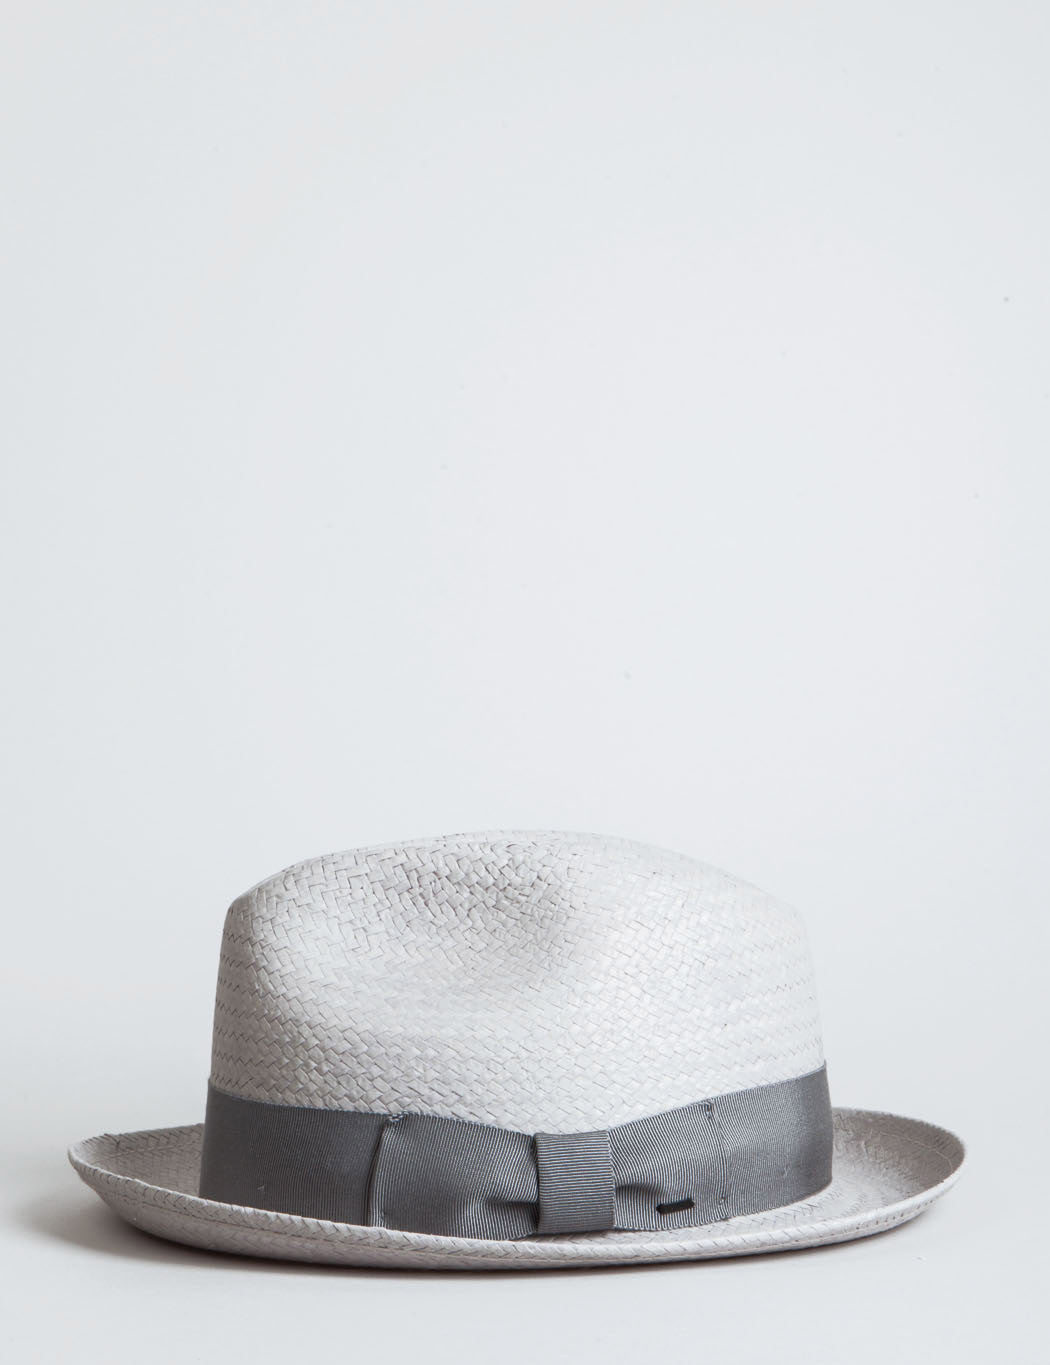 Bailey Lando Straw Trilby Hat - Overcast Grey